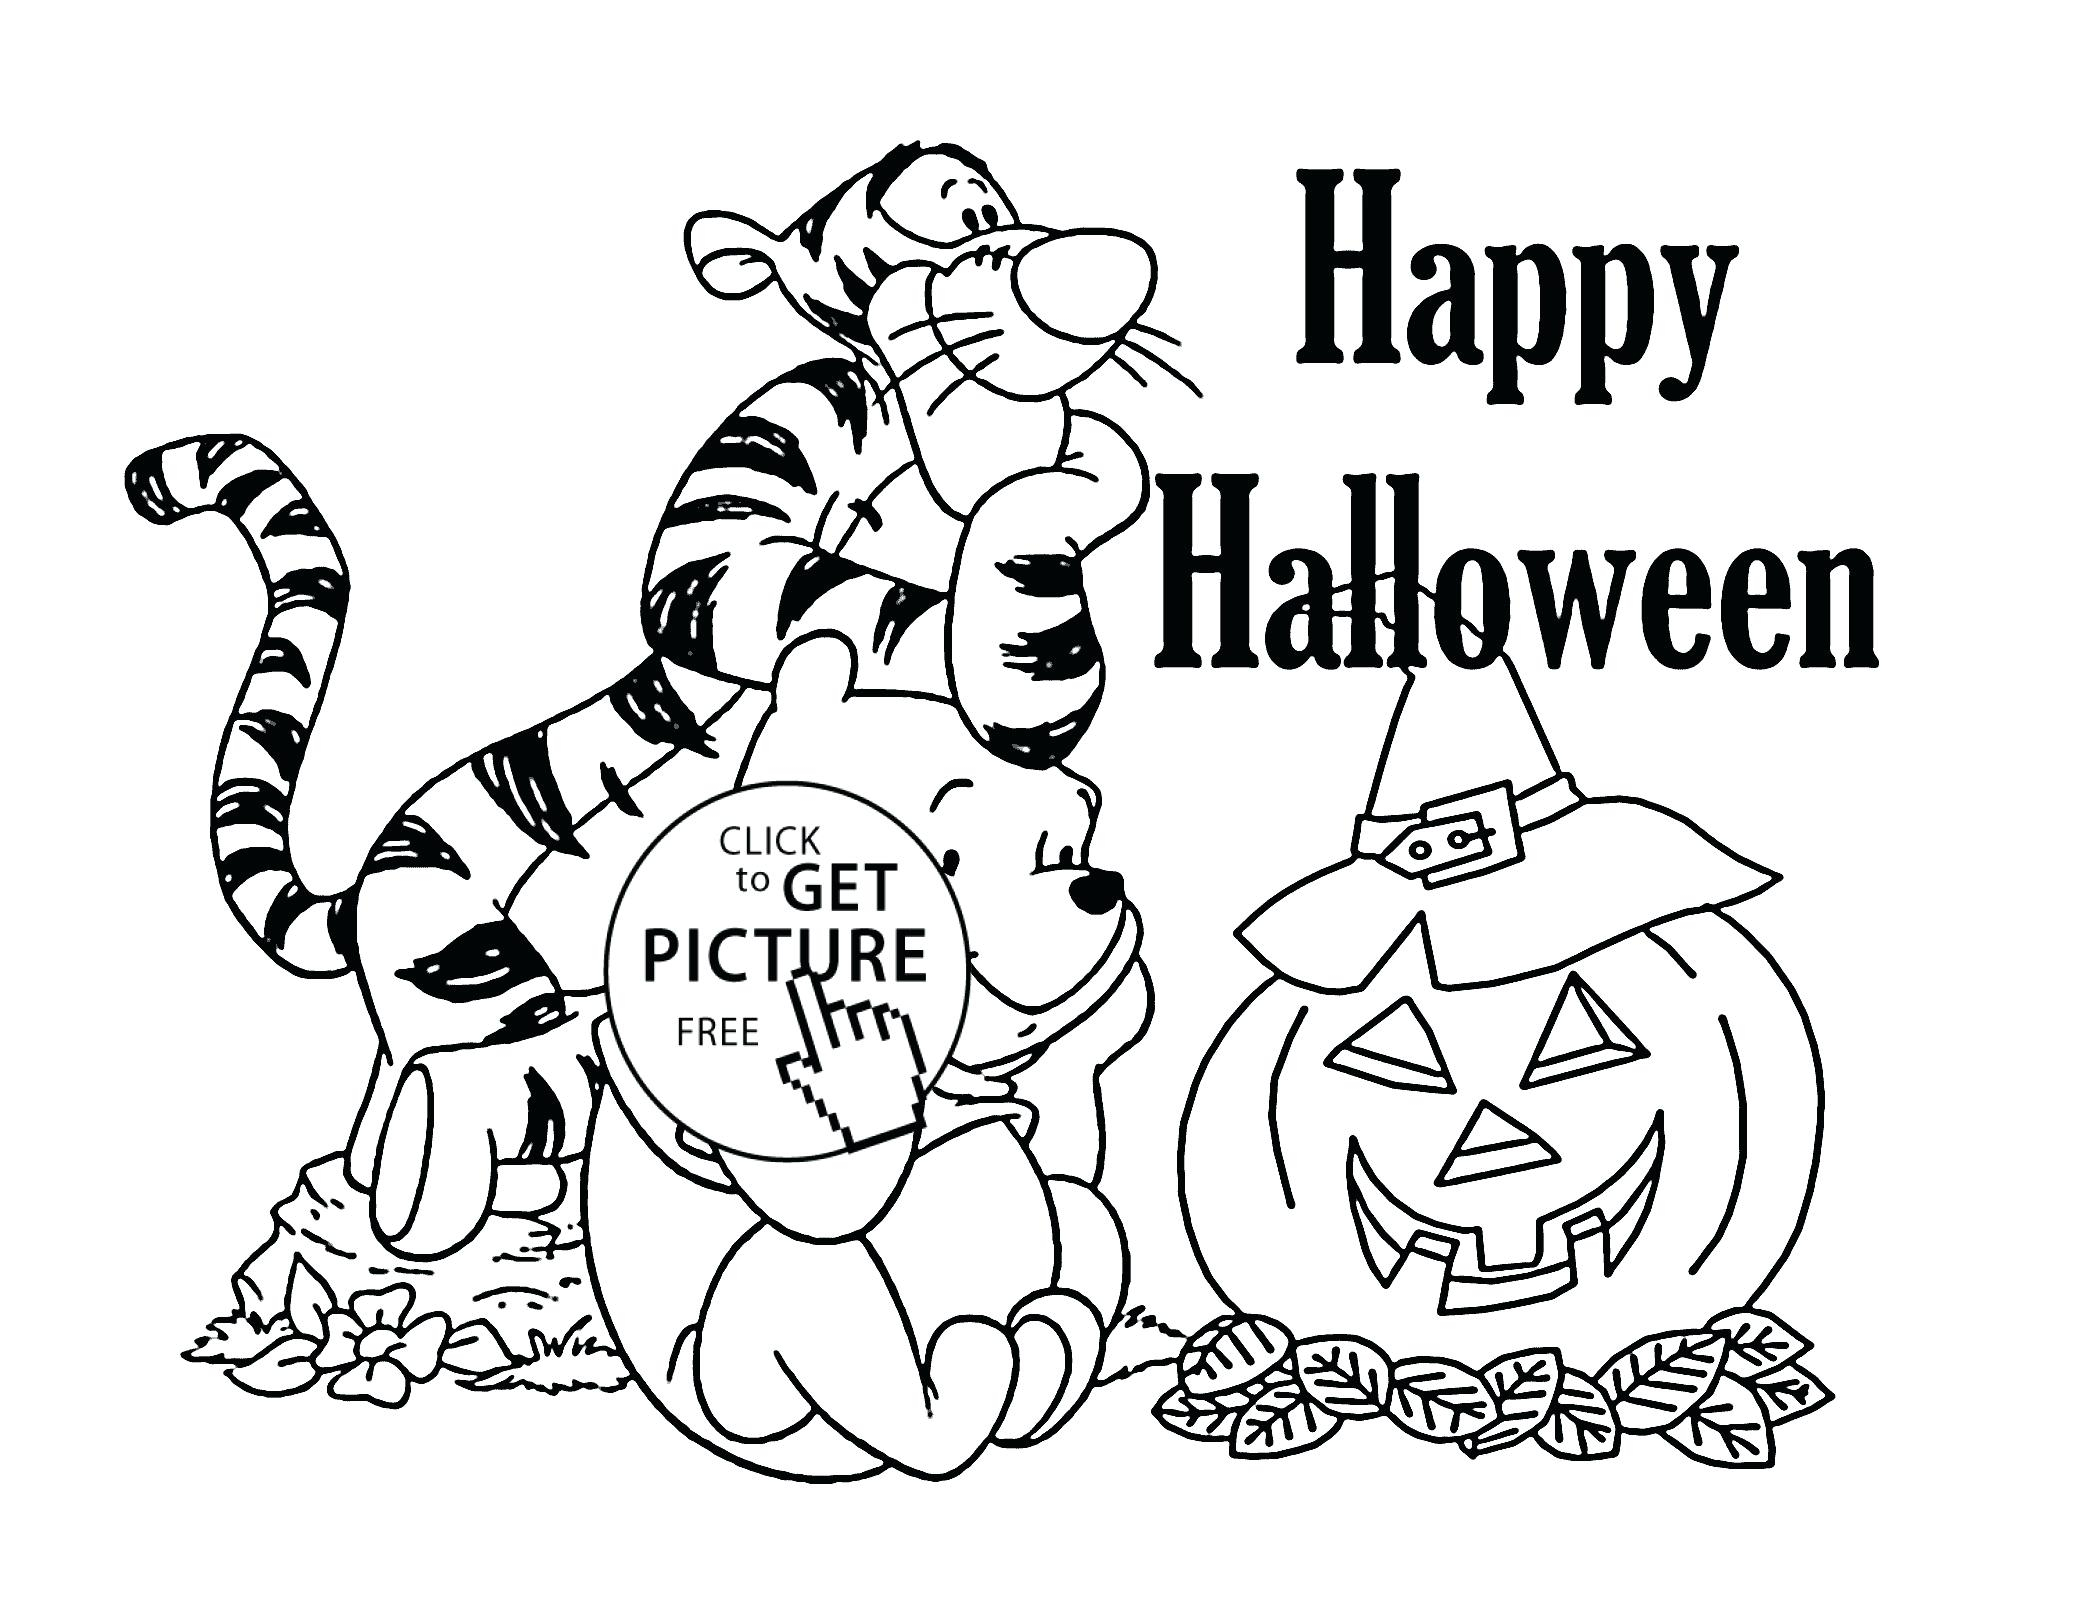 Worksheets : Free Printable Childrens Halloween Coloring